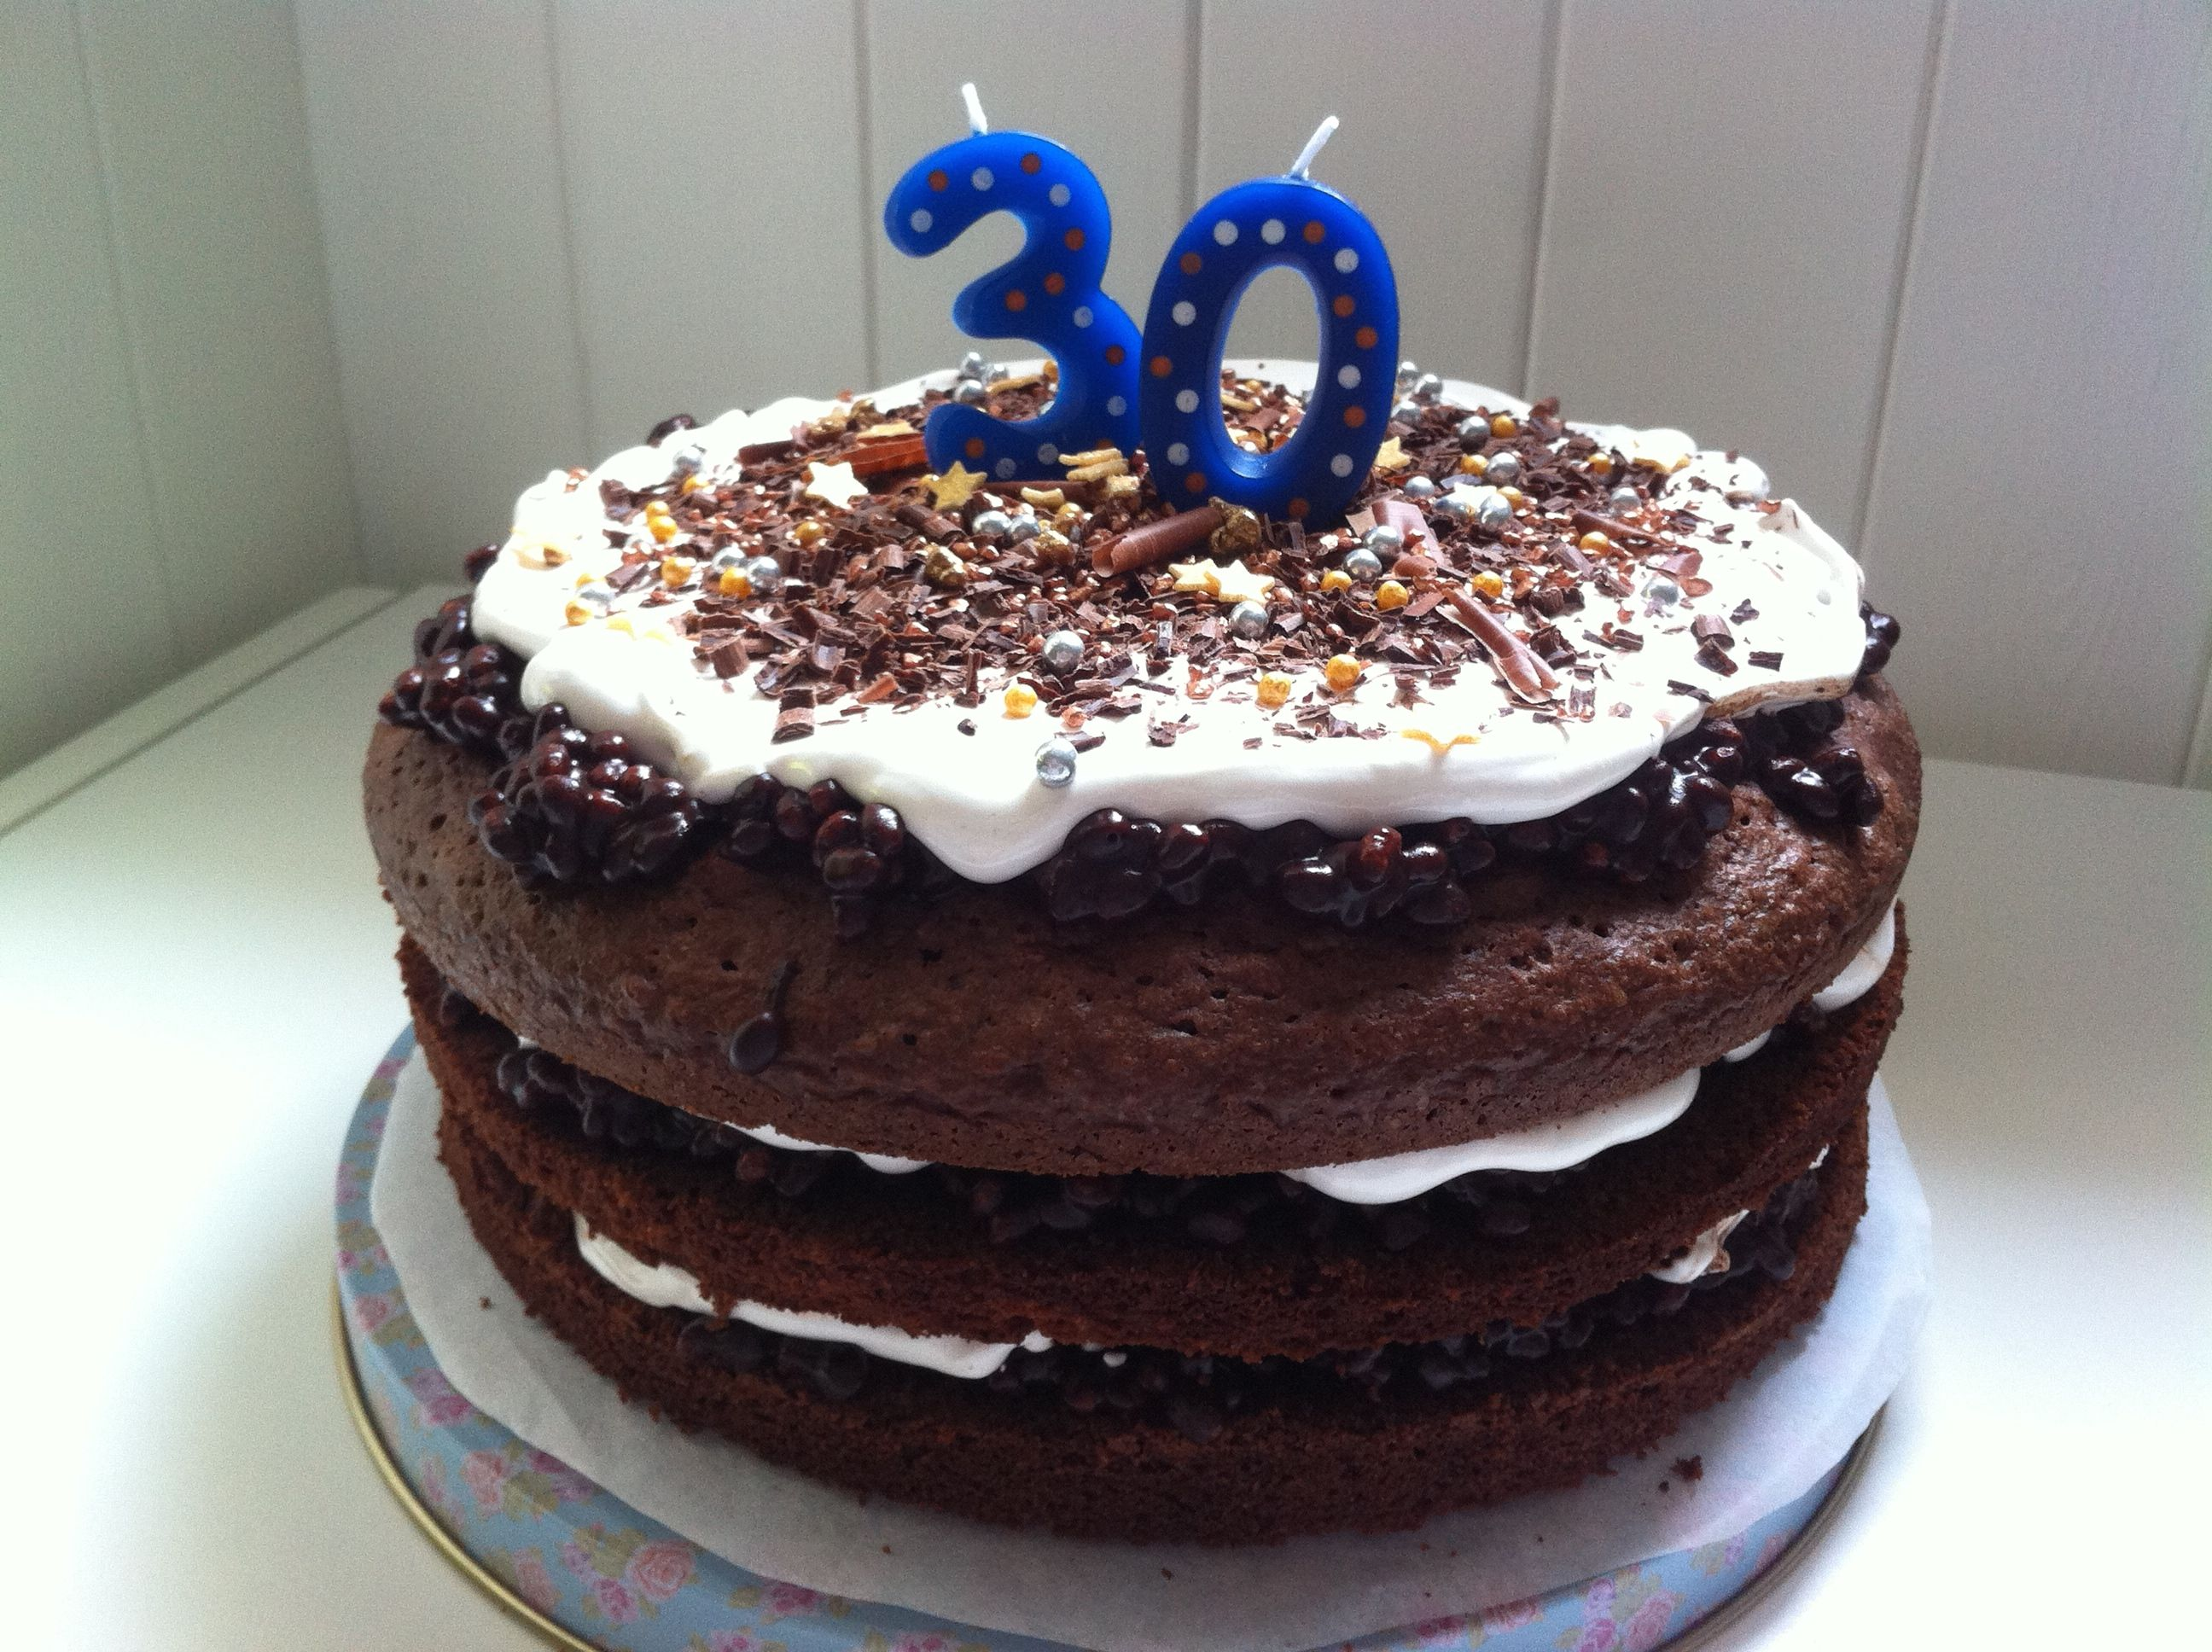 Jamie Olivers celebration cake from Comfort Food for a very